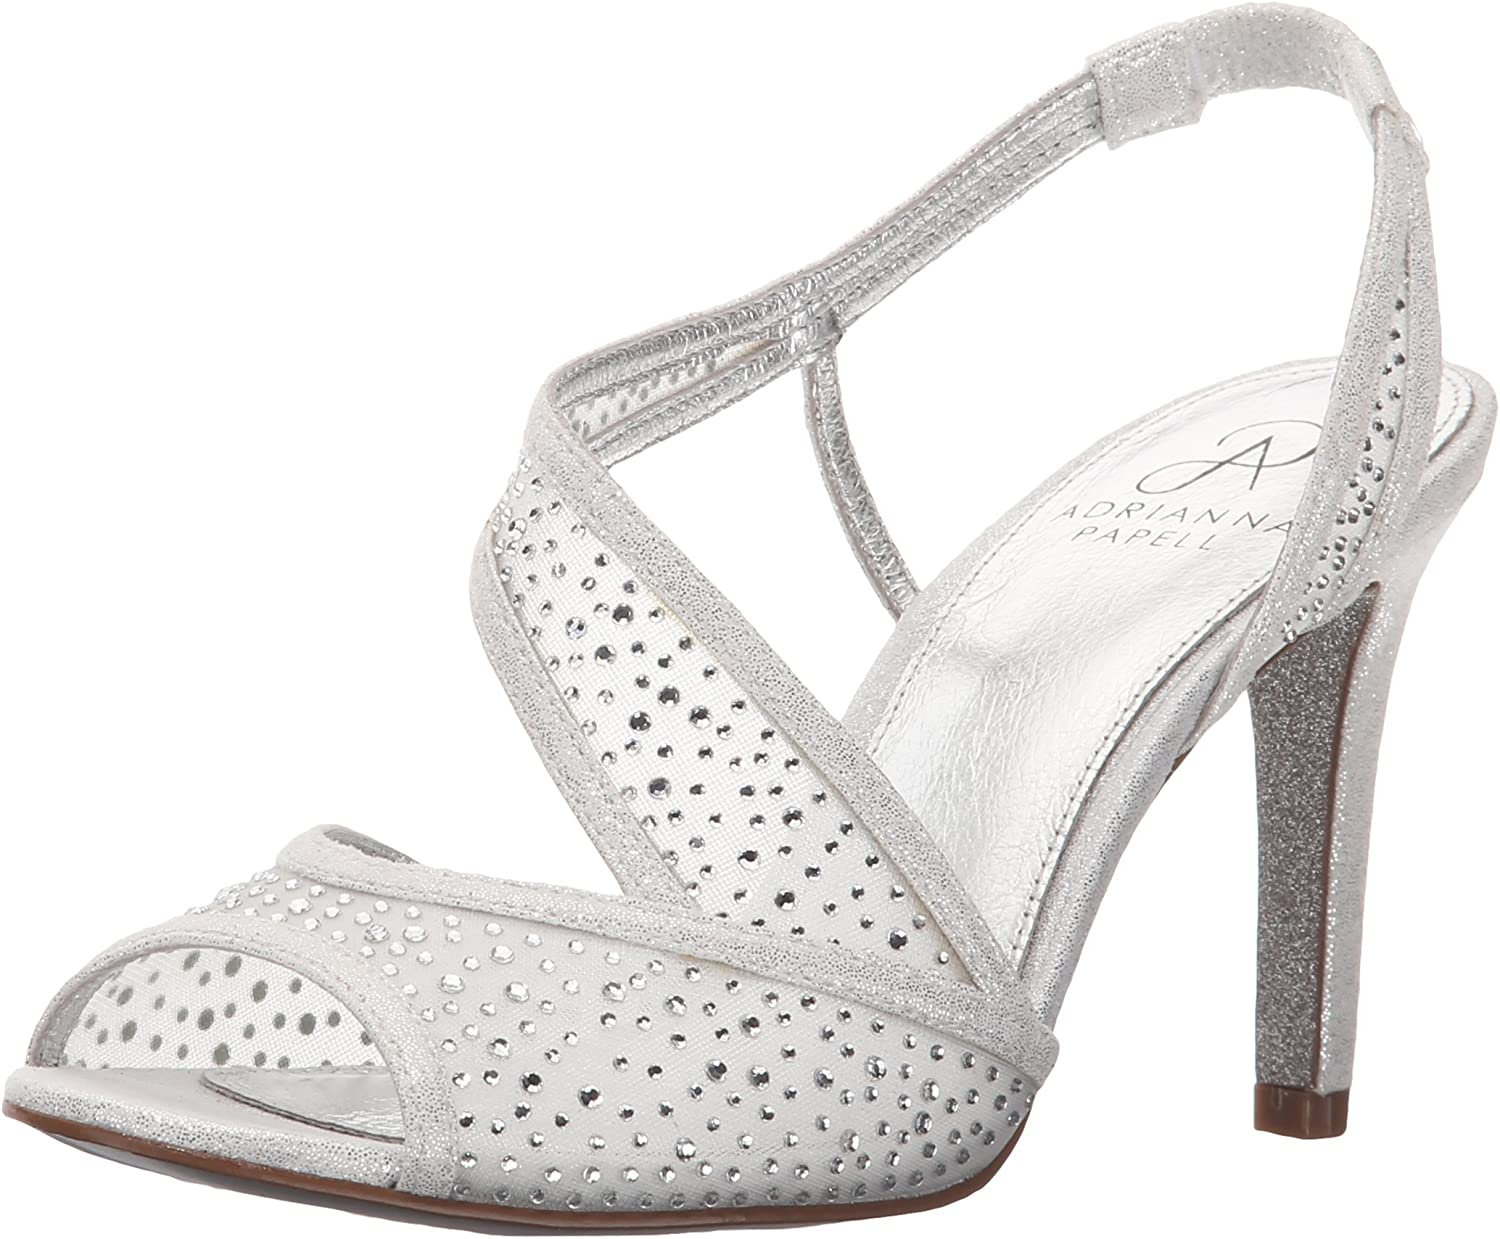 Adrianna Nashville-Davidson Quantity limited Mall Papell Women's Andie Sandal Dress